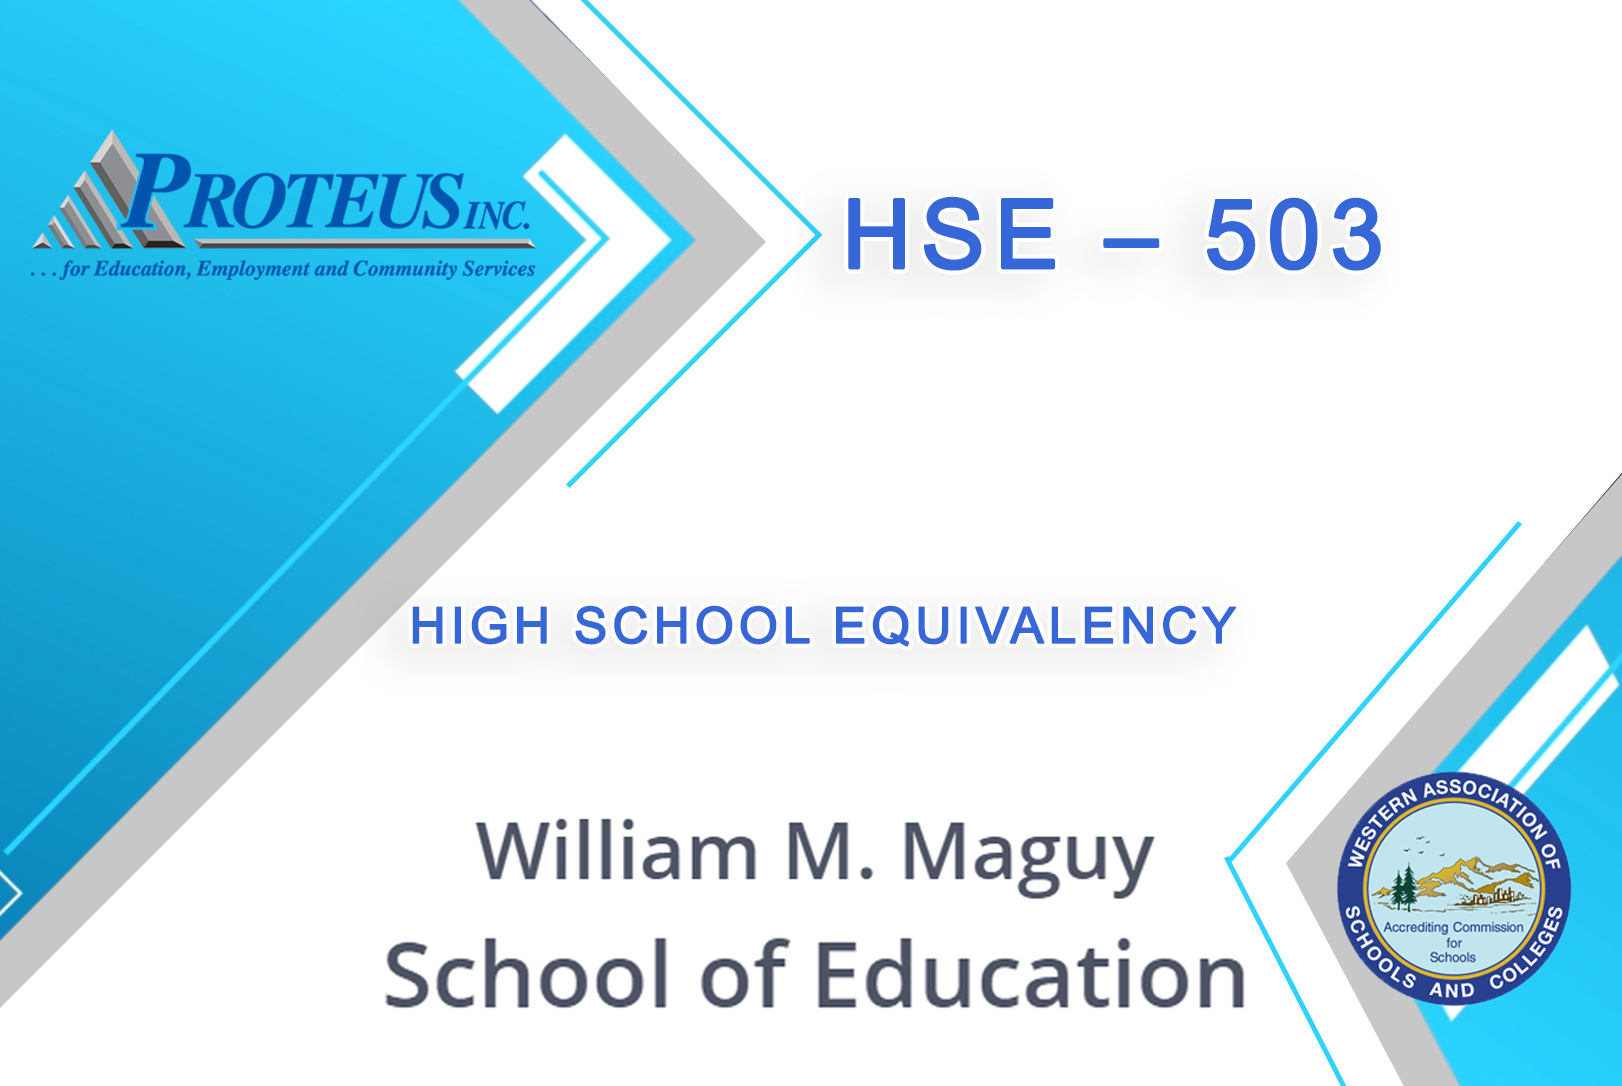 HIGH SCHOOL EQUIVALENCY